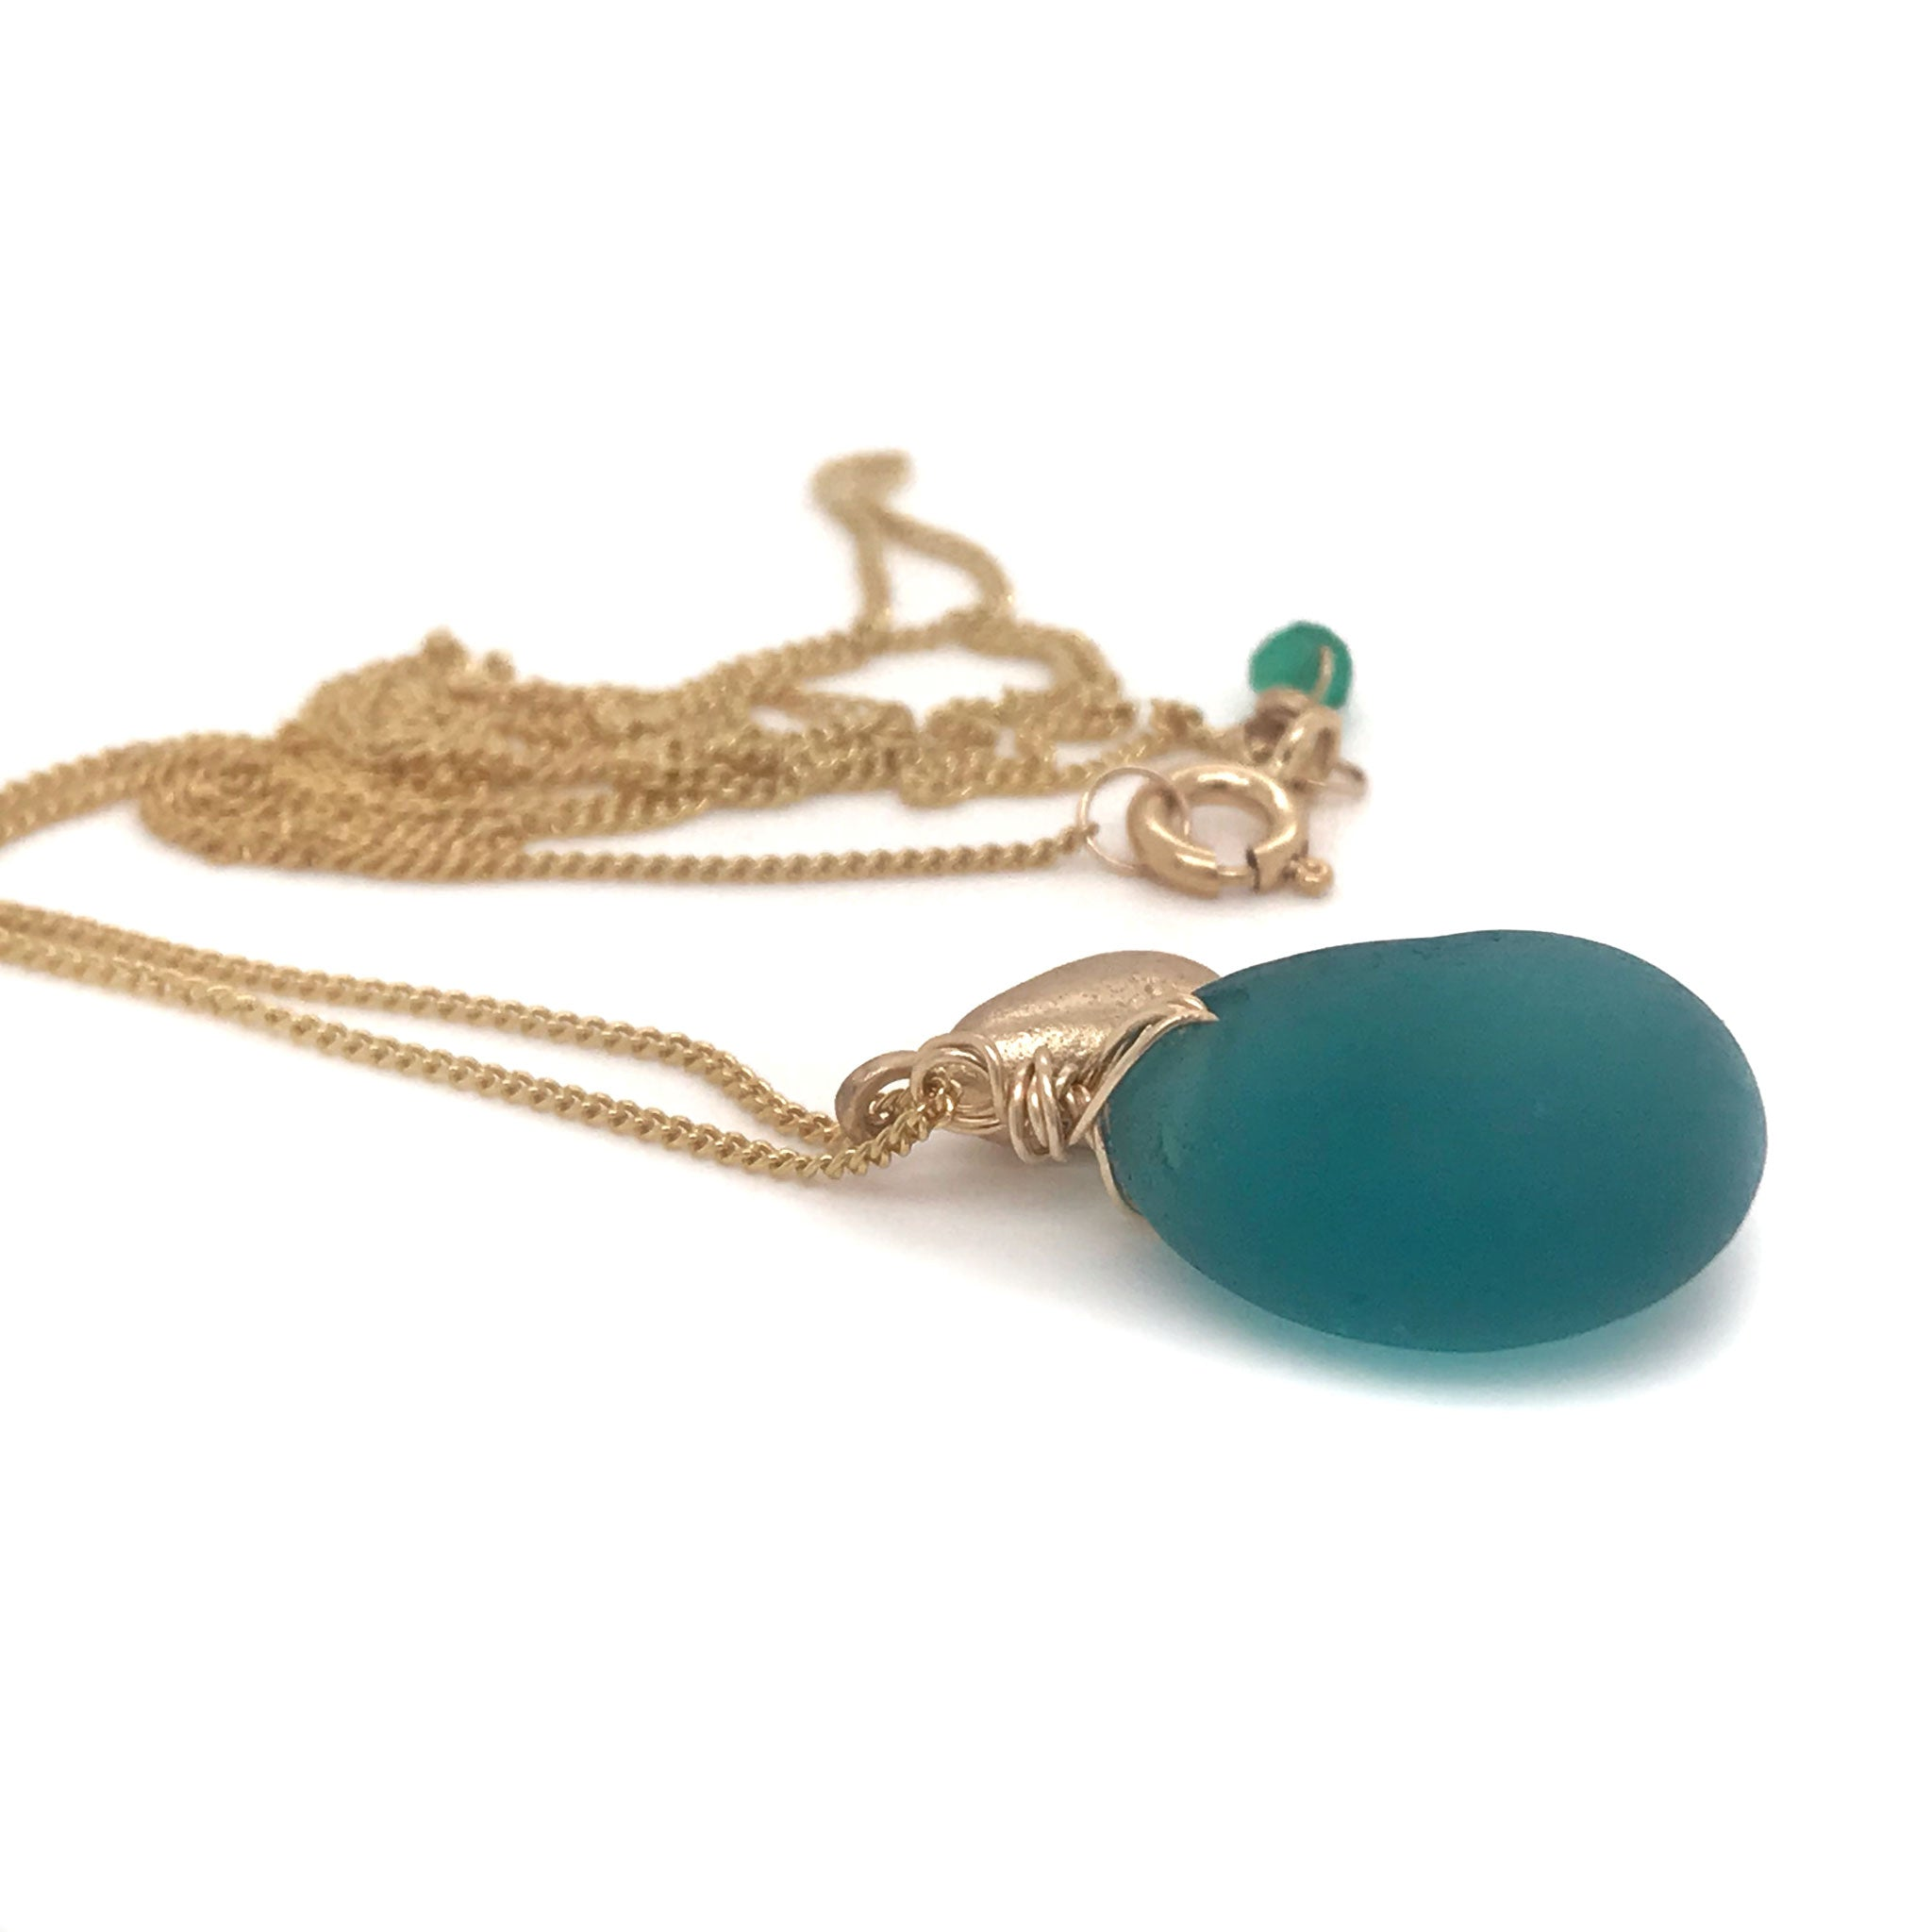 teal seaglass necklace on gold chain with solid 14k gold charm Kriket Broadhurst jewellery